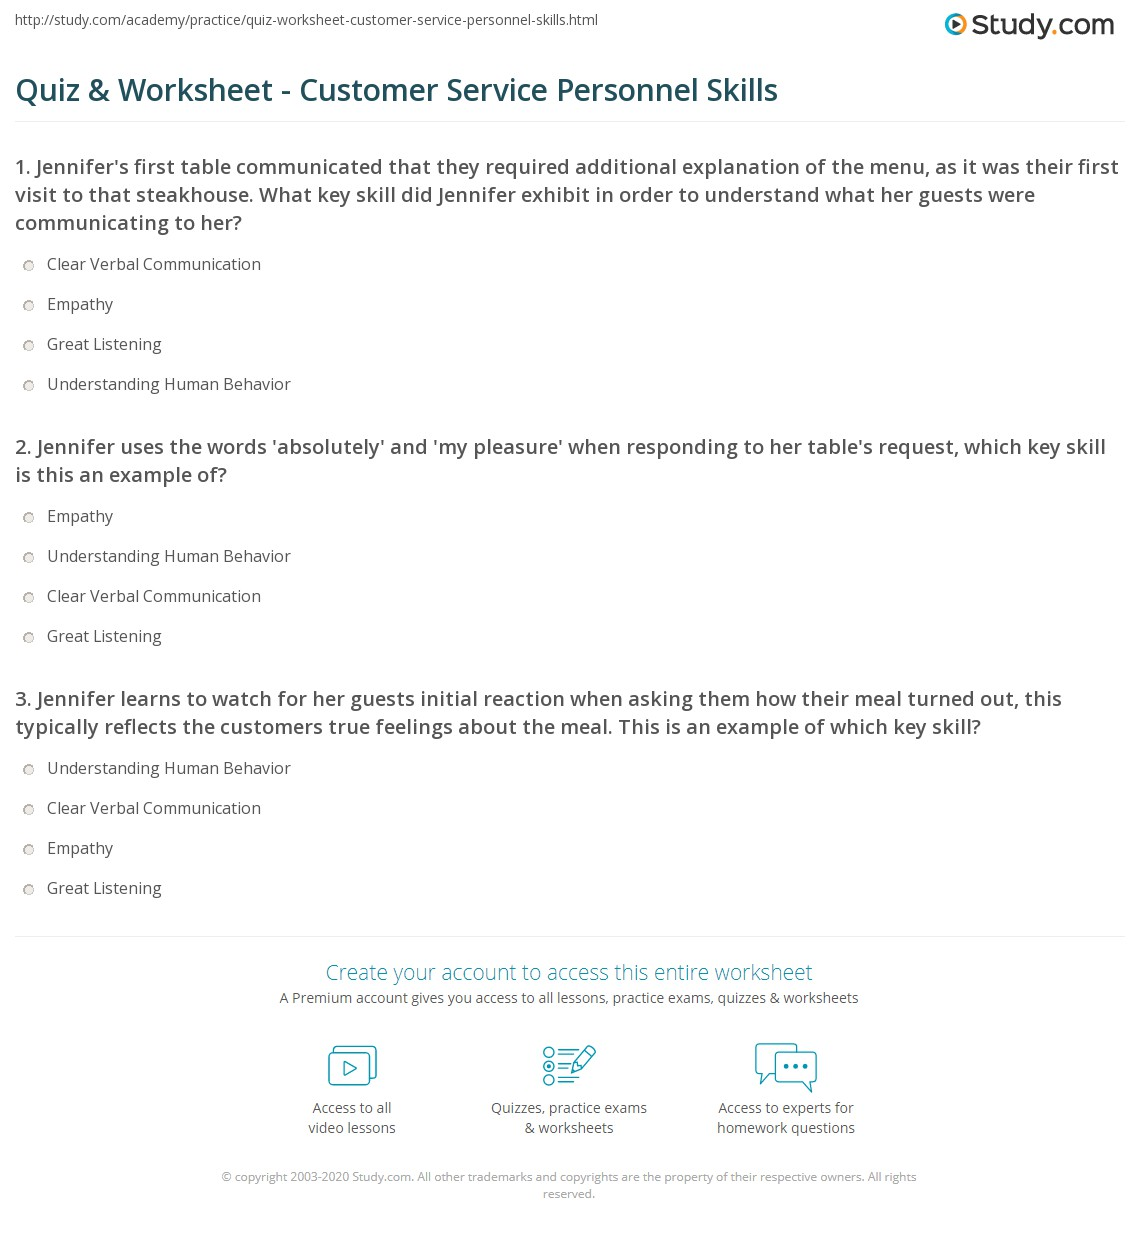 quiz worksheet customer service personnel skills com jennifer uses the words absolutely and my pleasure when responding to her tables request which key skill is this an example of